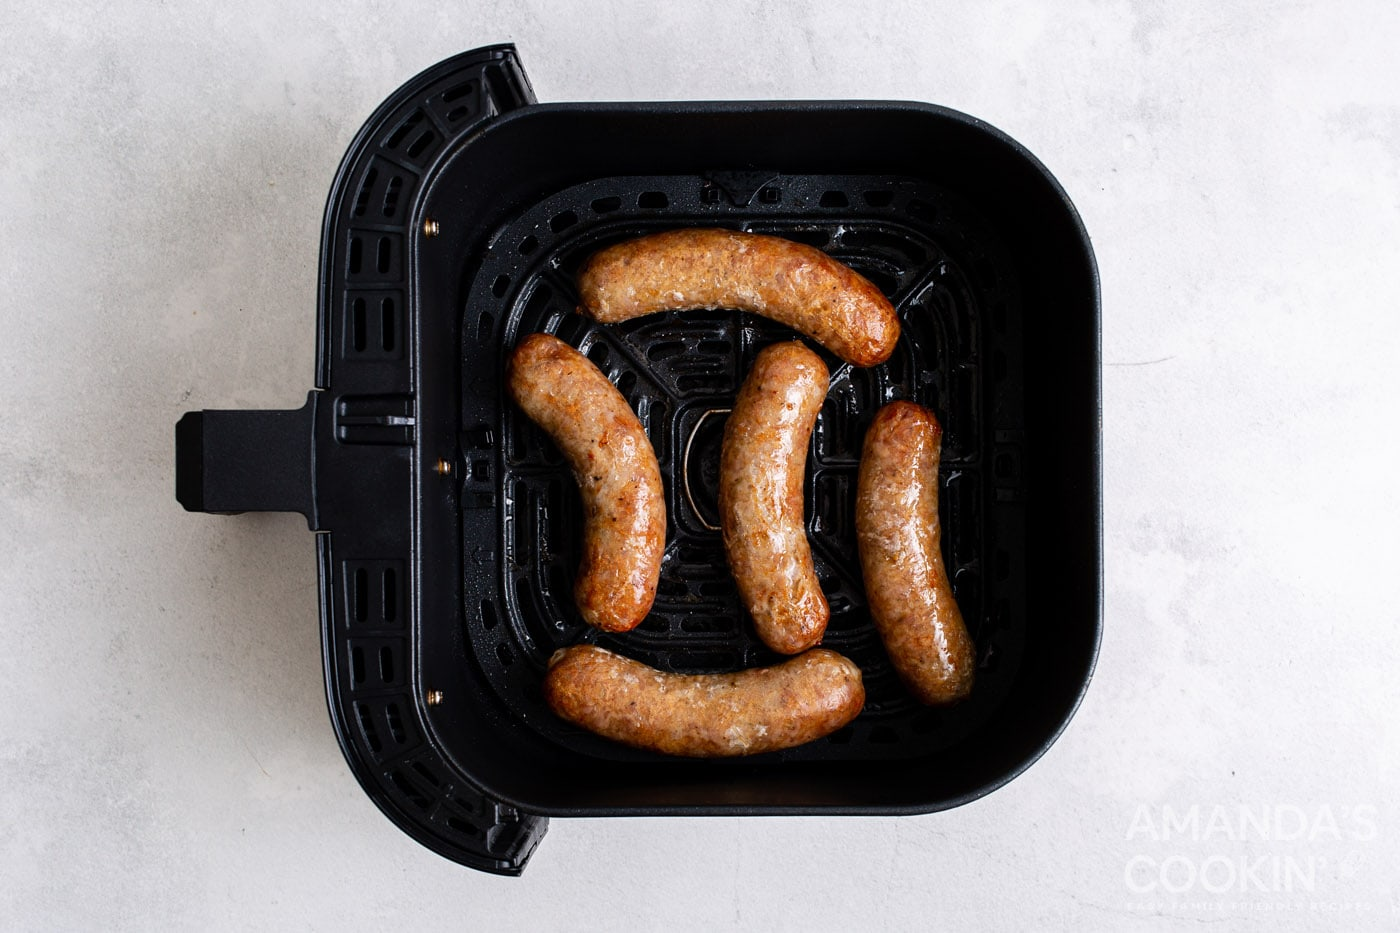 cooked bratwurst in an air fryer